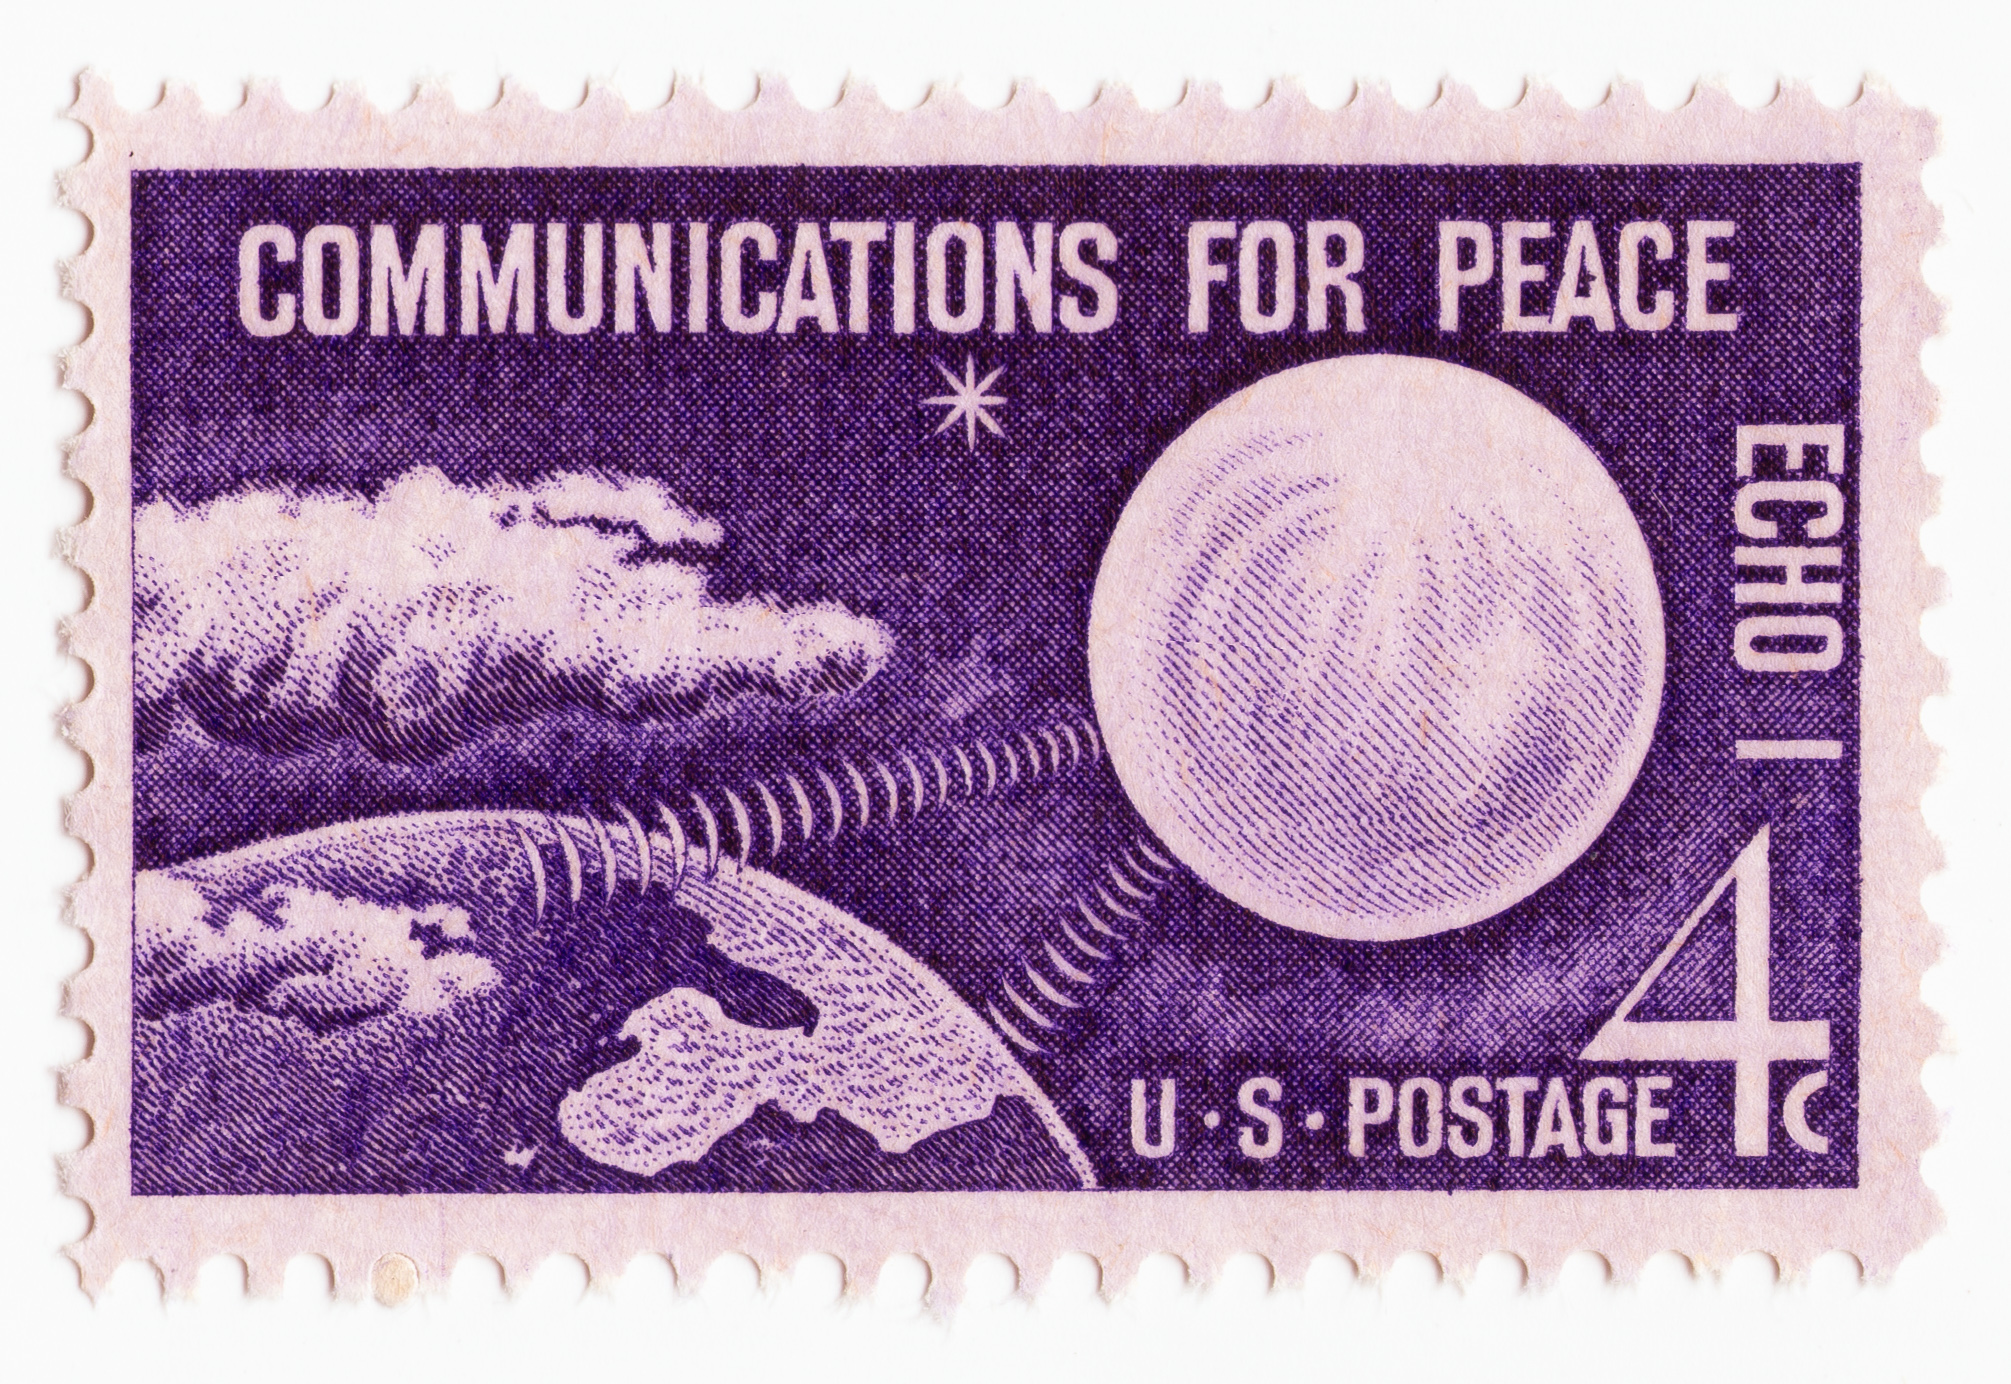 Echo I, Communications for Peace (1960)